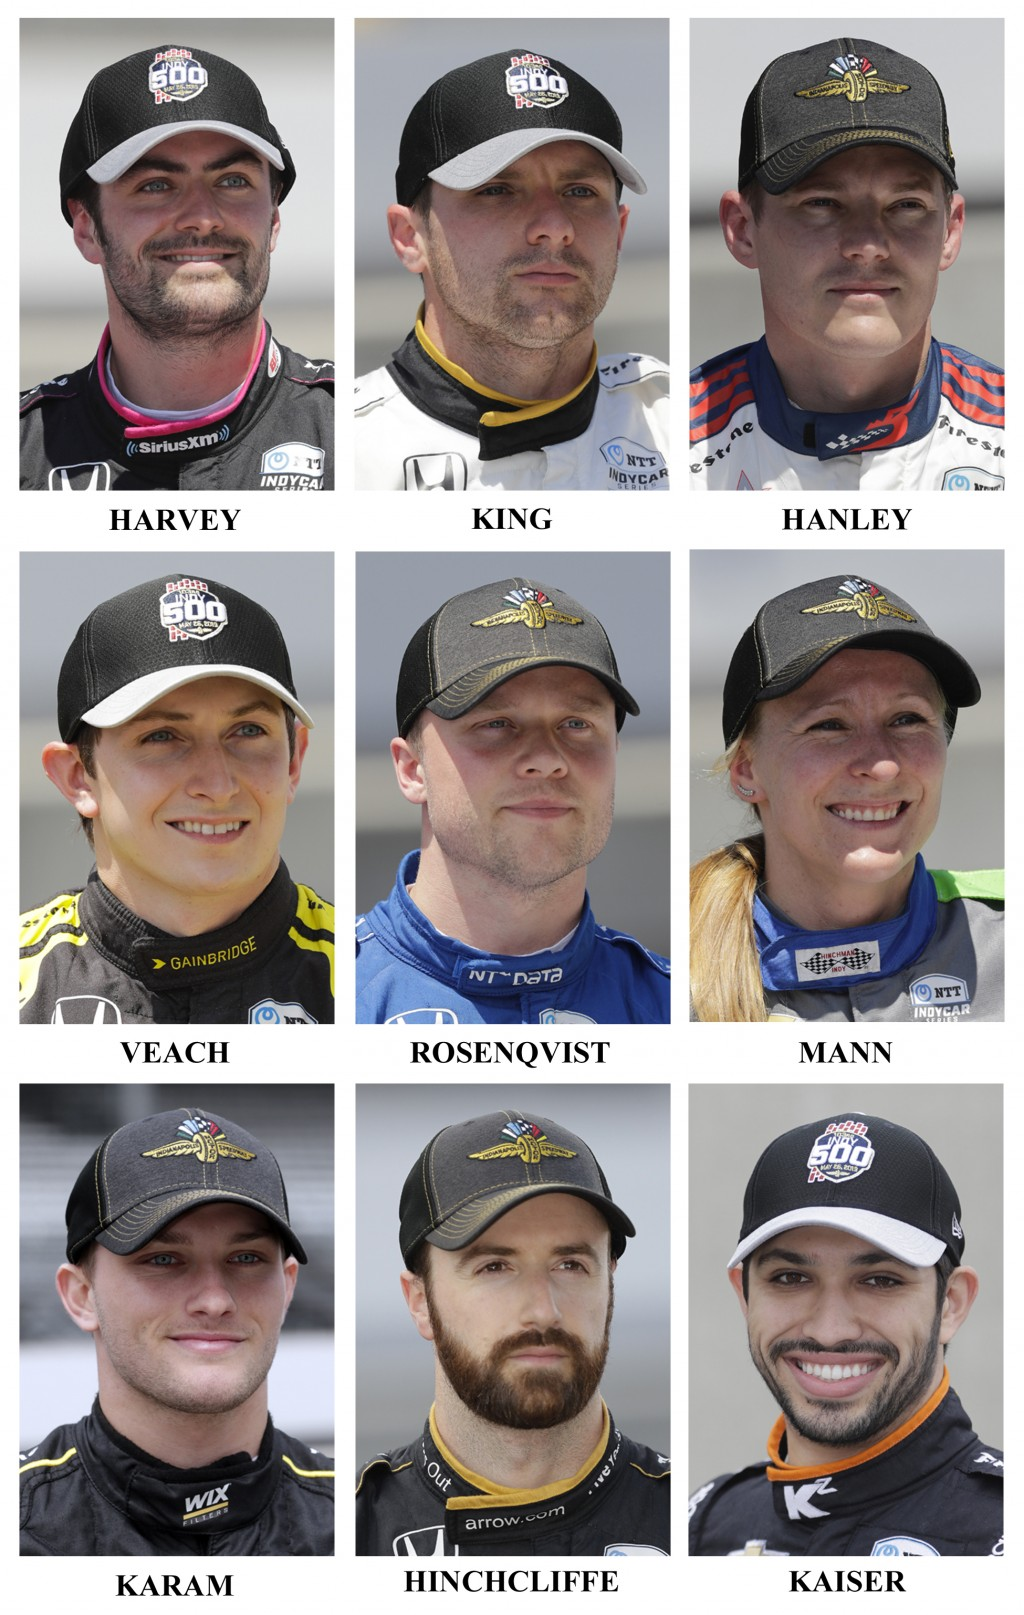 Drivers in the starting field for the May 26 Indianapolis 500 IndyCar auto race are shown after they qualified at the Indianapolis Motor Speedway in I...